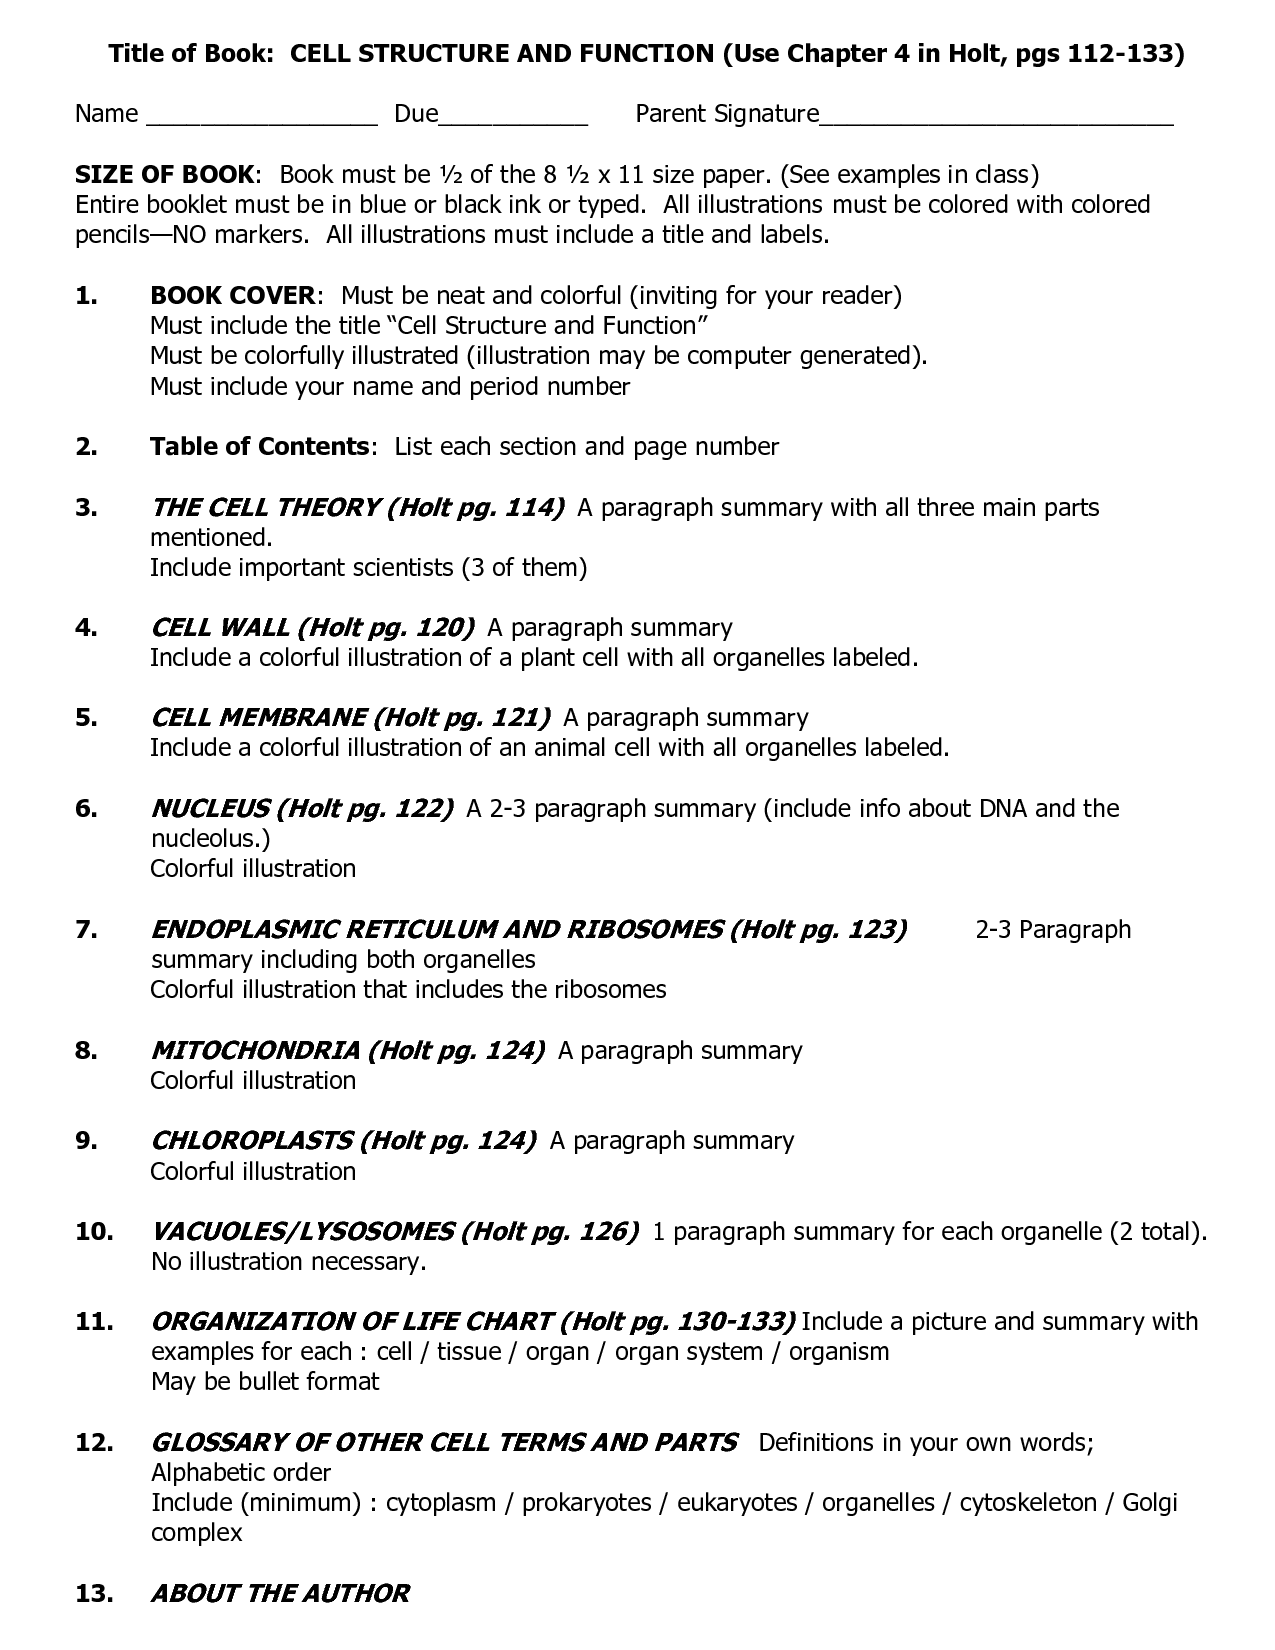 Holt Biology Cell Structure Worksheet Answers